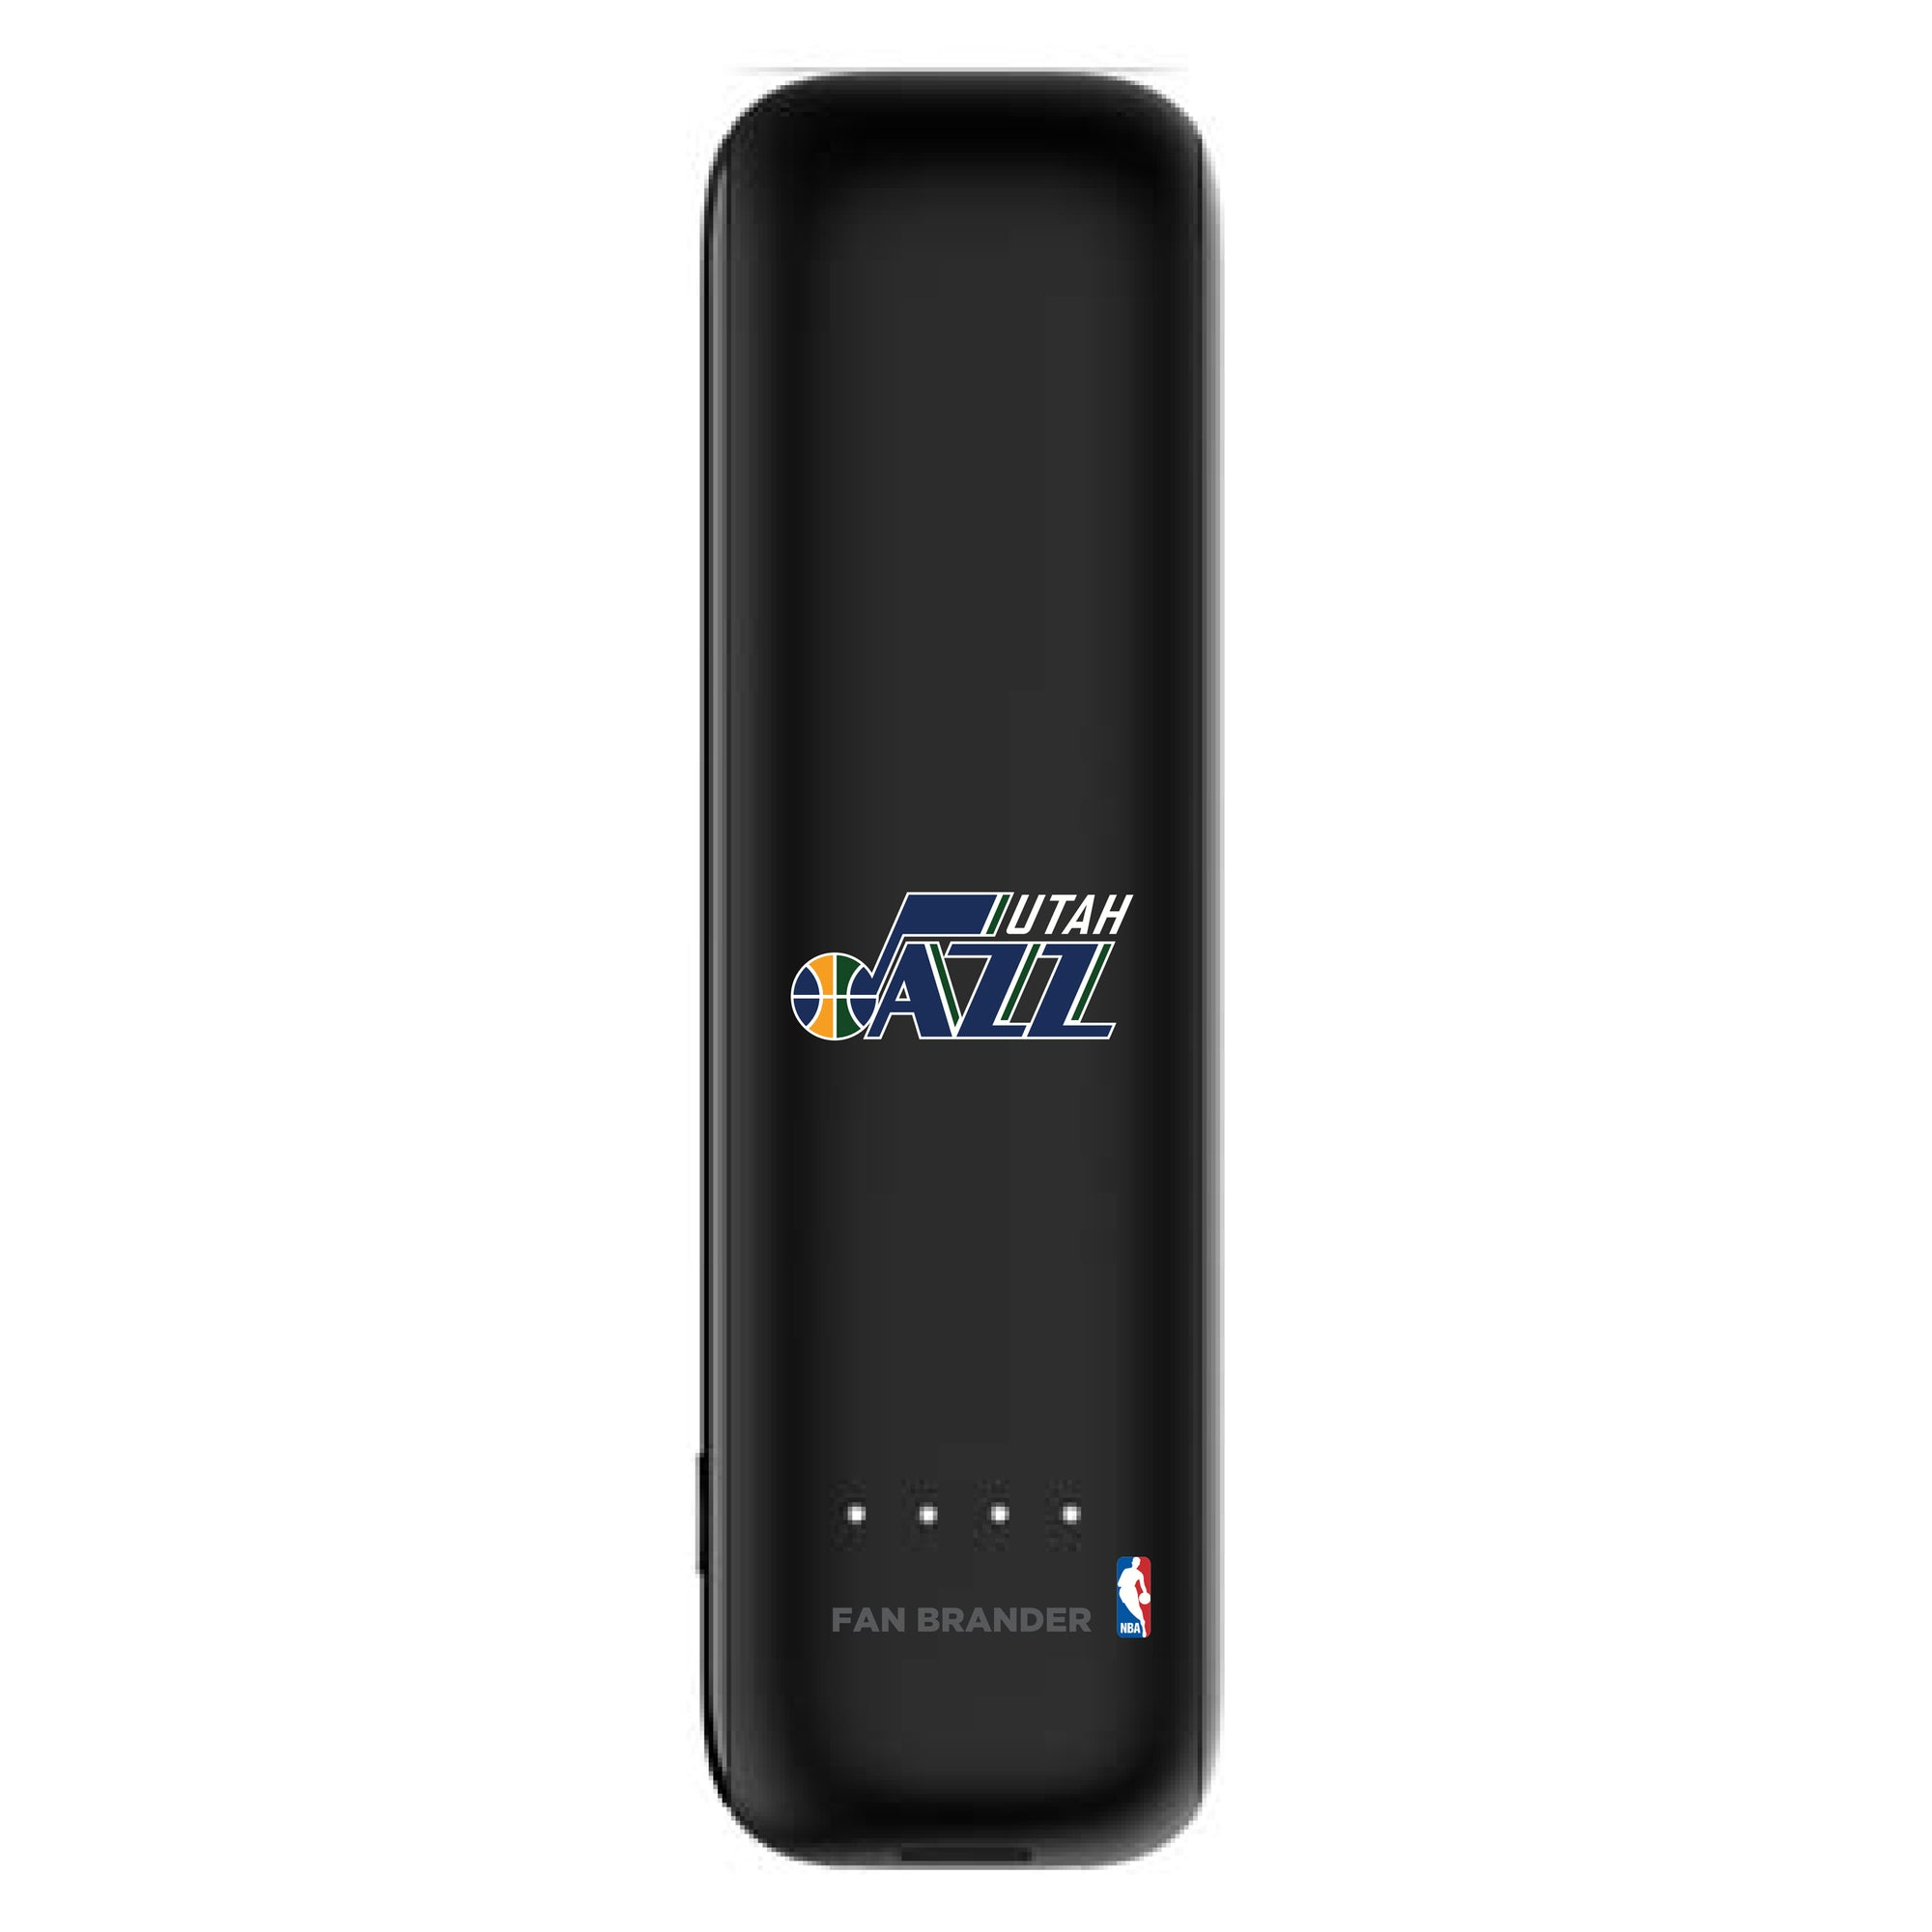 Utah Jazz Mophie Power Boost Mini 2,600mAH